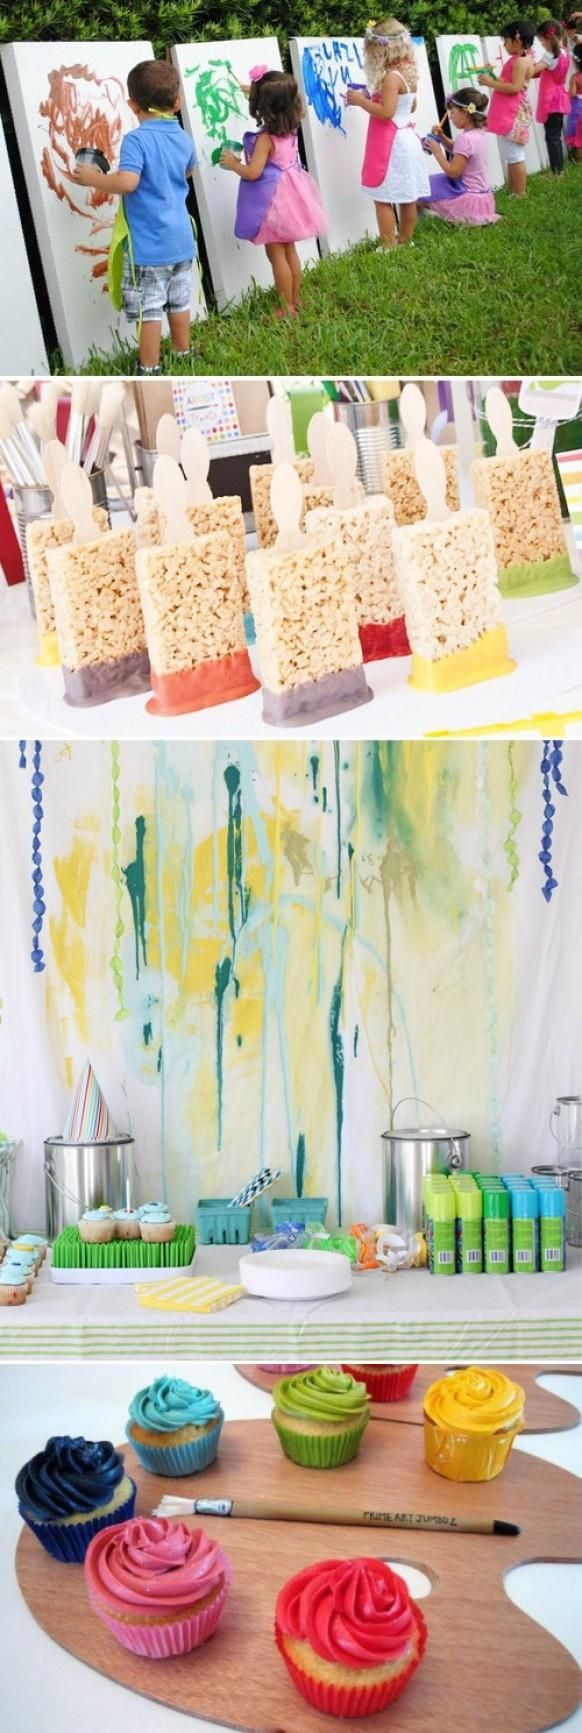 A Paint Party Cute Kids Birthday Idea Holidays Events At Repinned Net